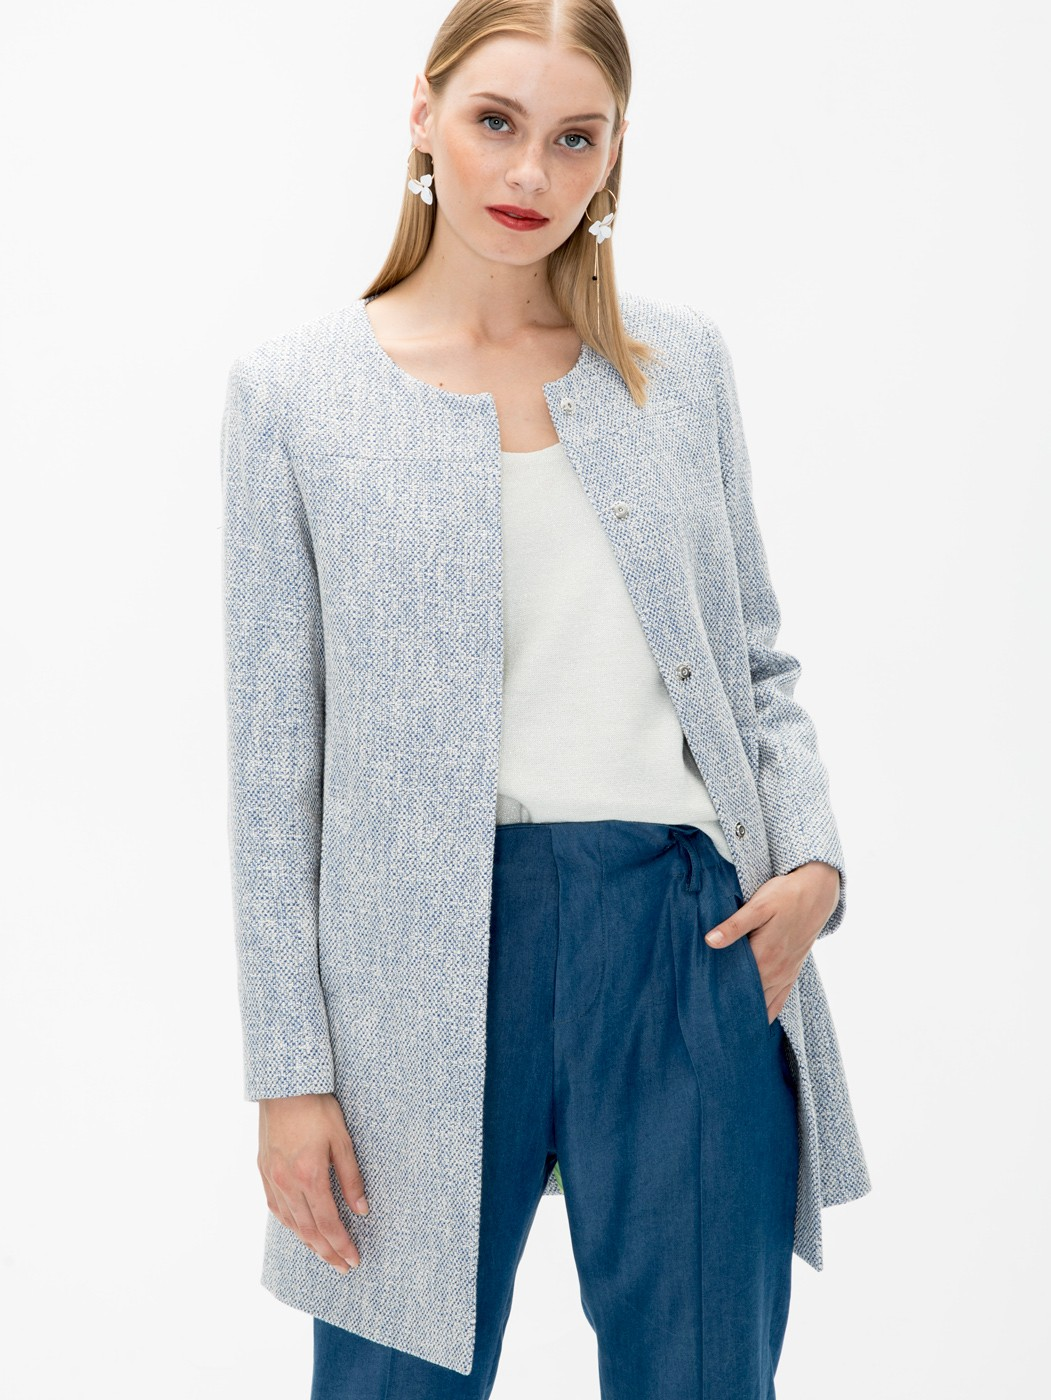 SOFIA COAT IN BLUE SILVER MADELAIN